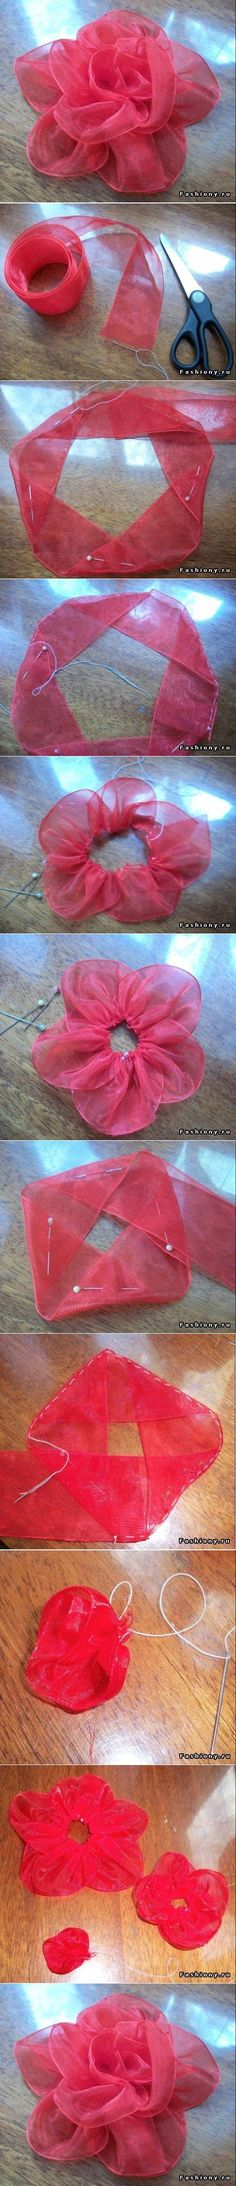 DIY Ribbon Tape Flower